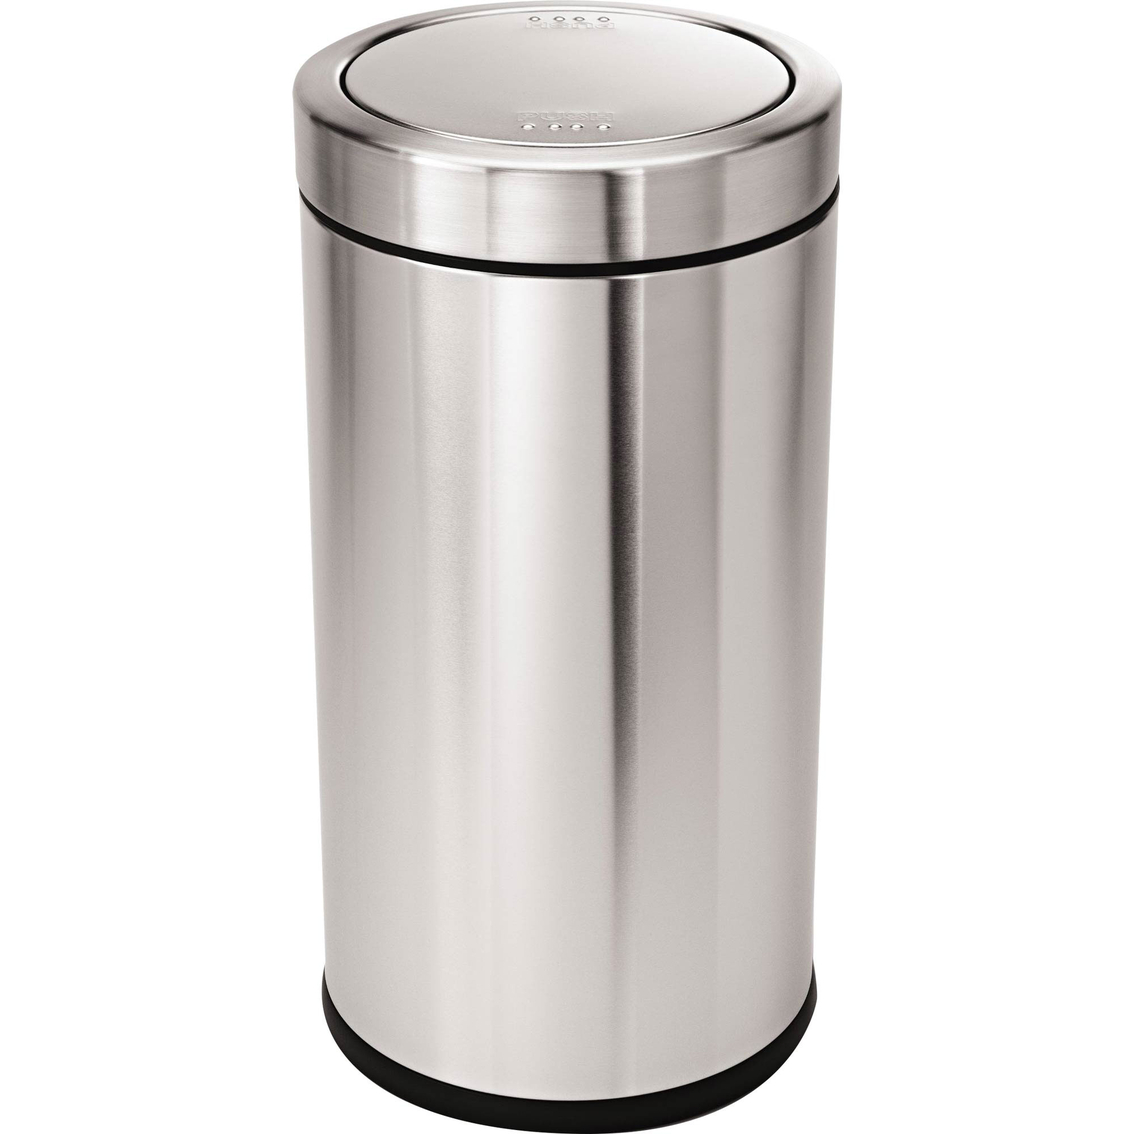 Simplehuman Swing Top Trash Can Trash Cans Home